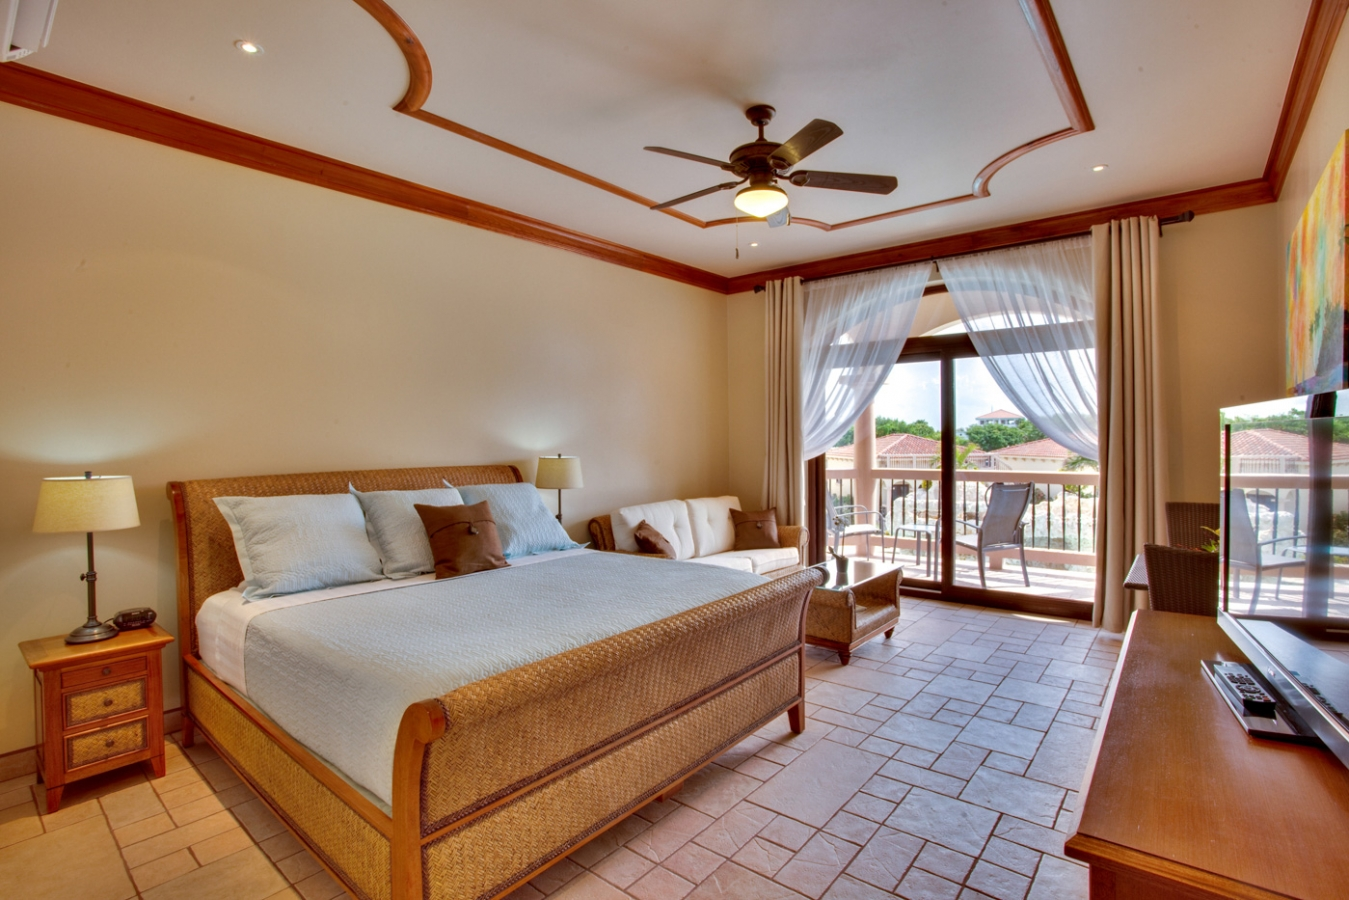 Luxury Hotel Rooms At Coco Beach Resort